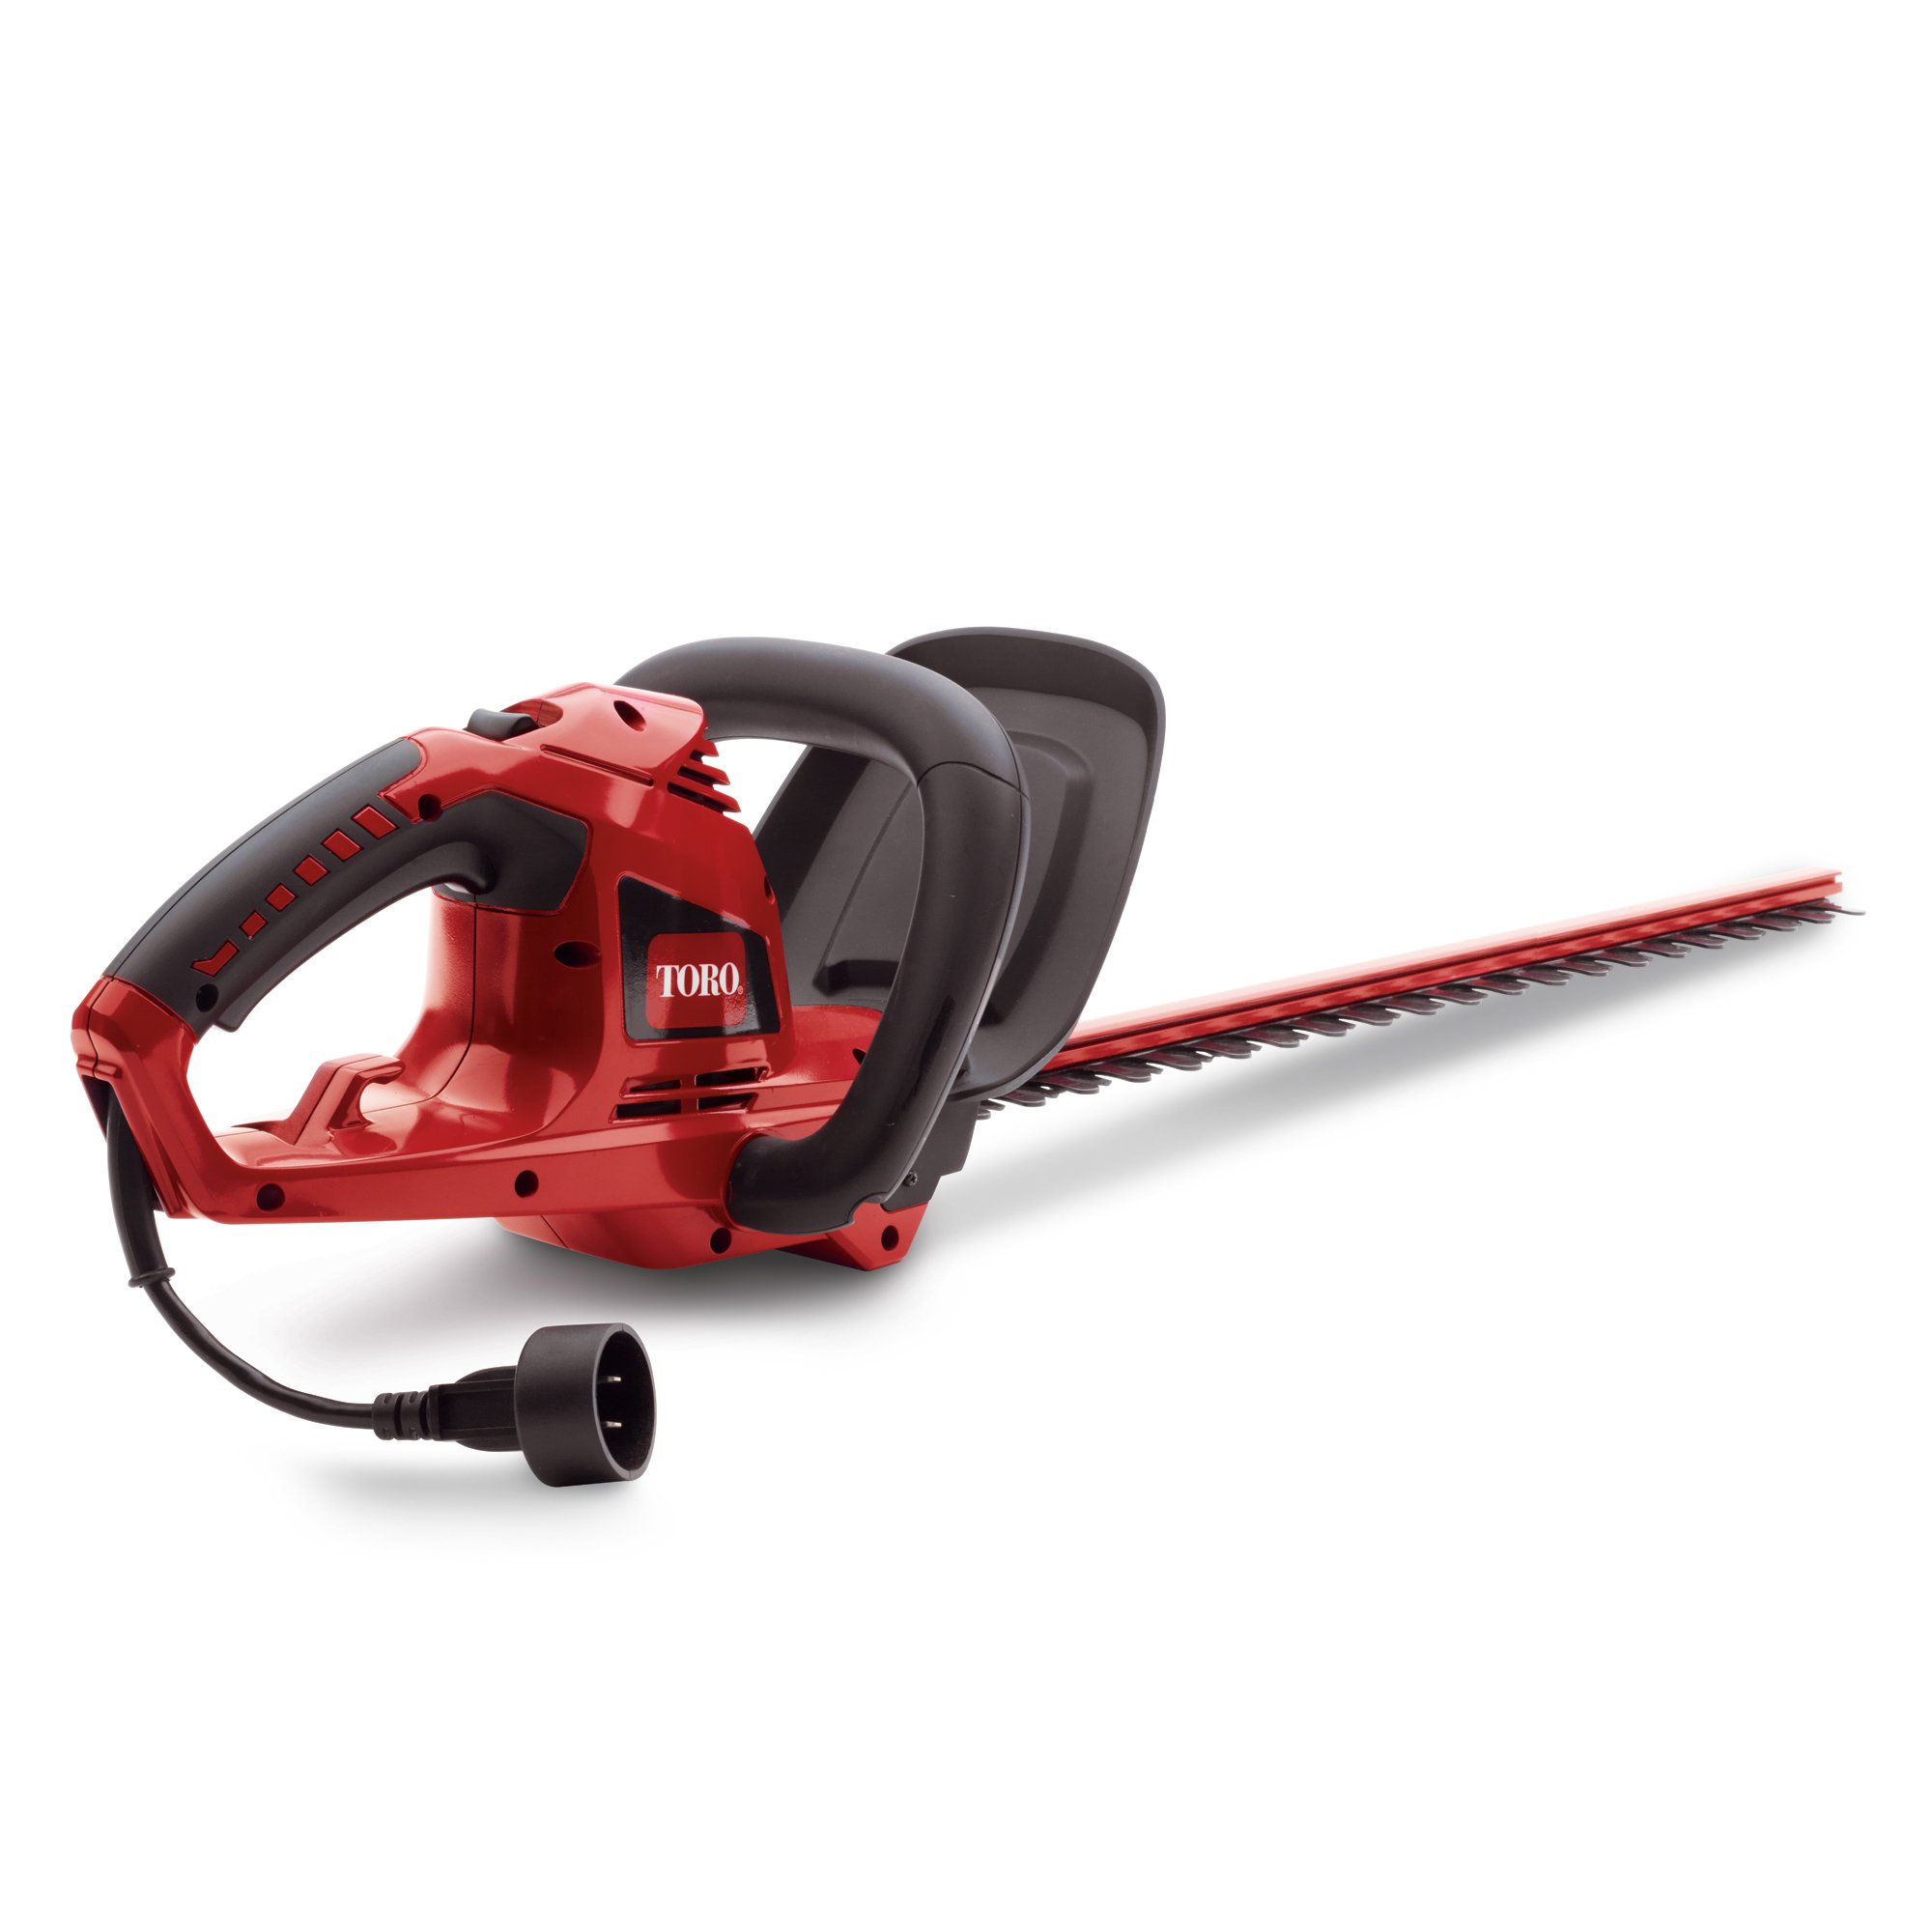 Toro 51490 Corded 22-Inch Hedge Trimmer by Toro